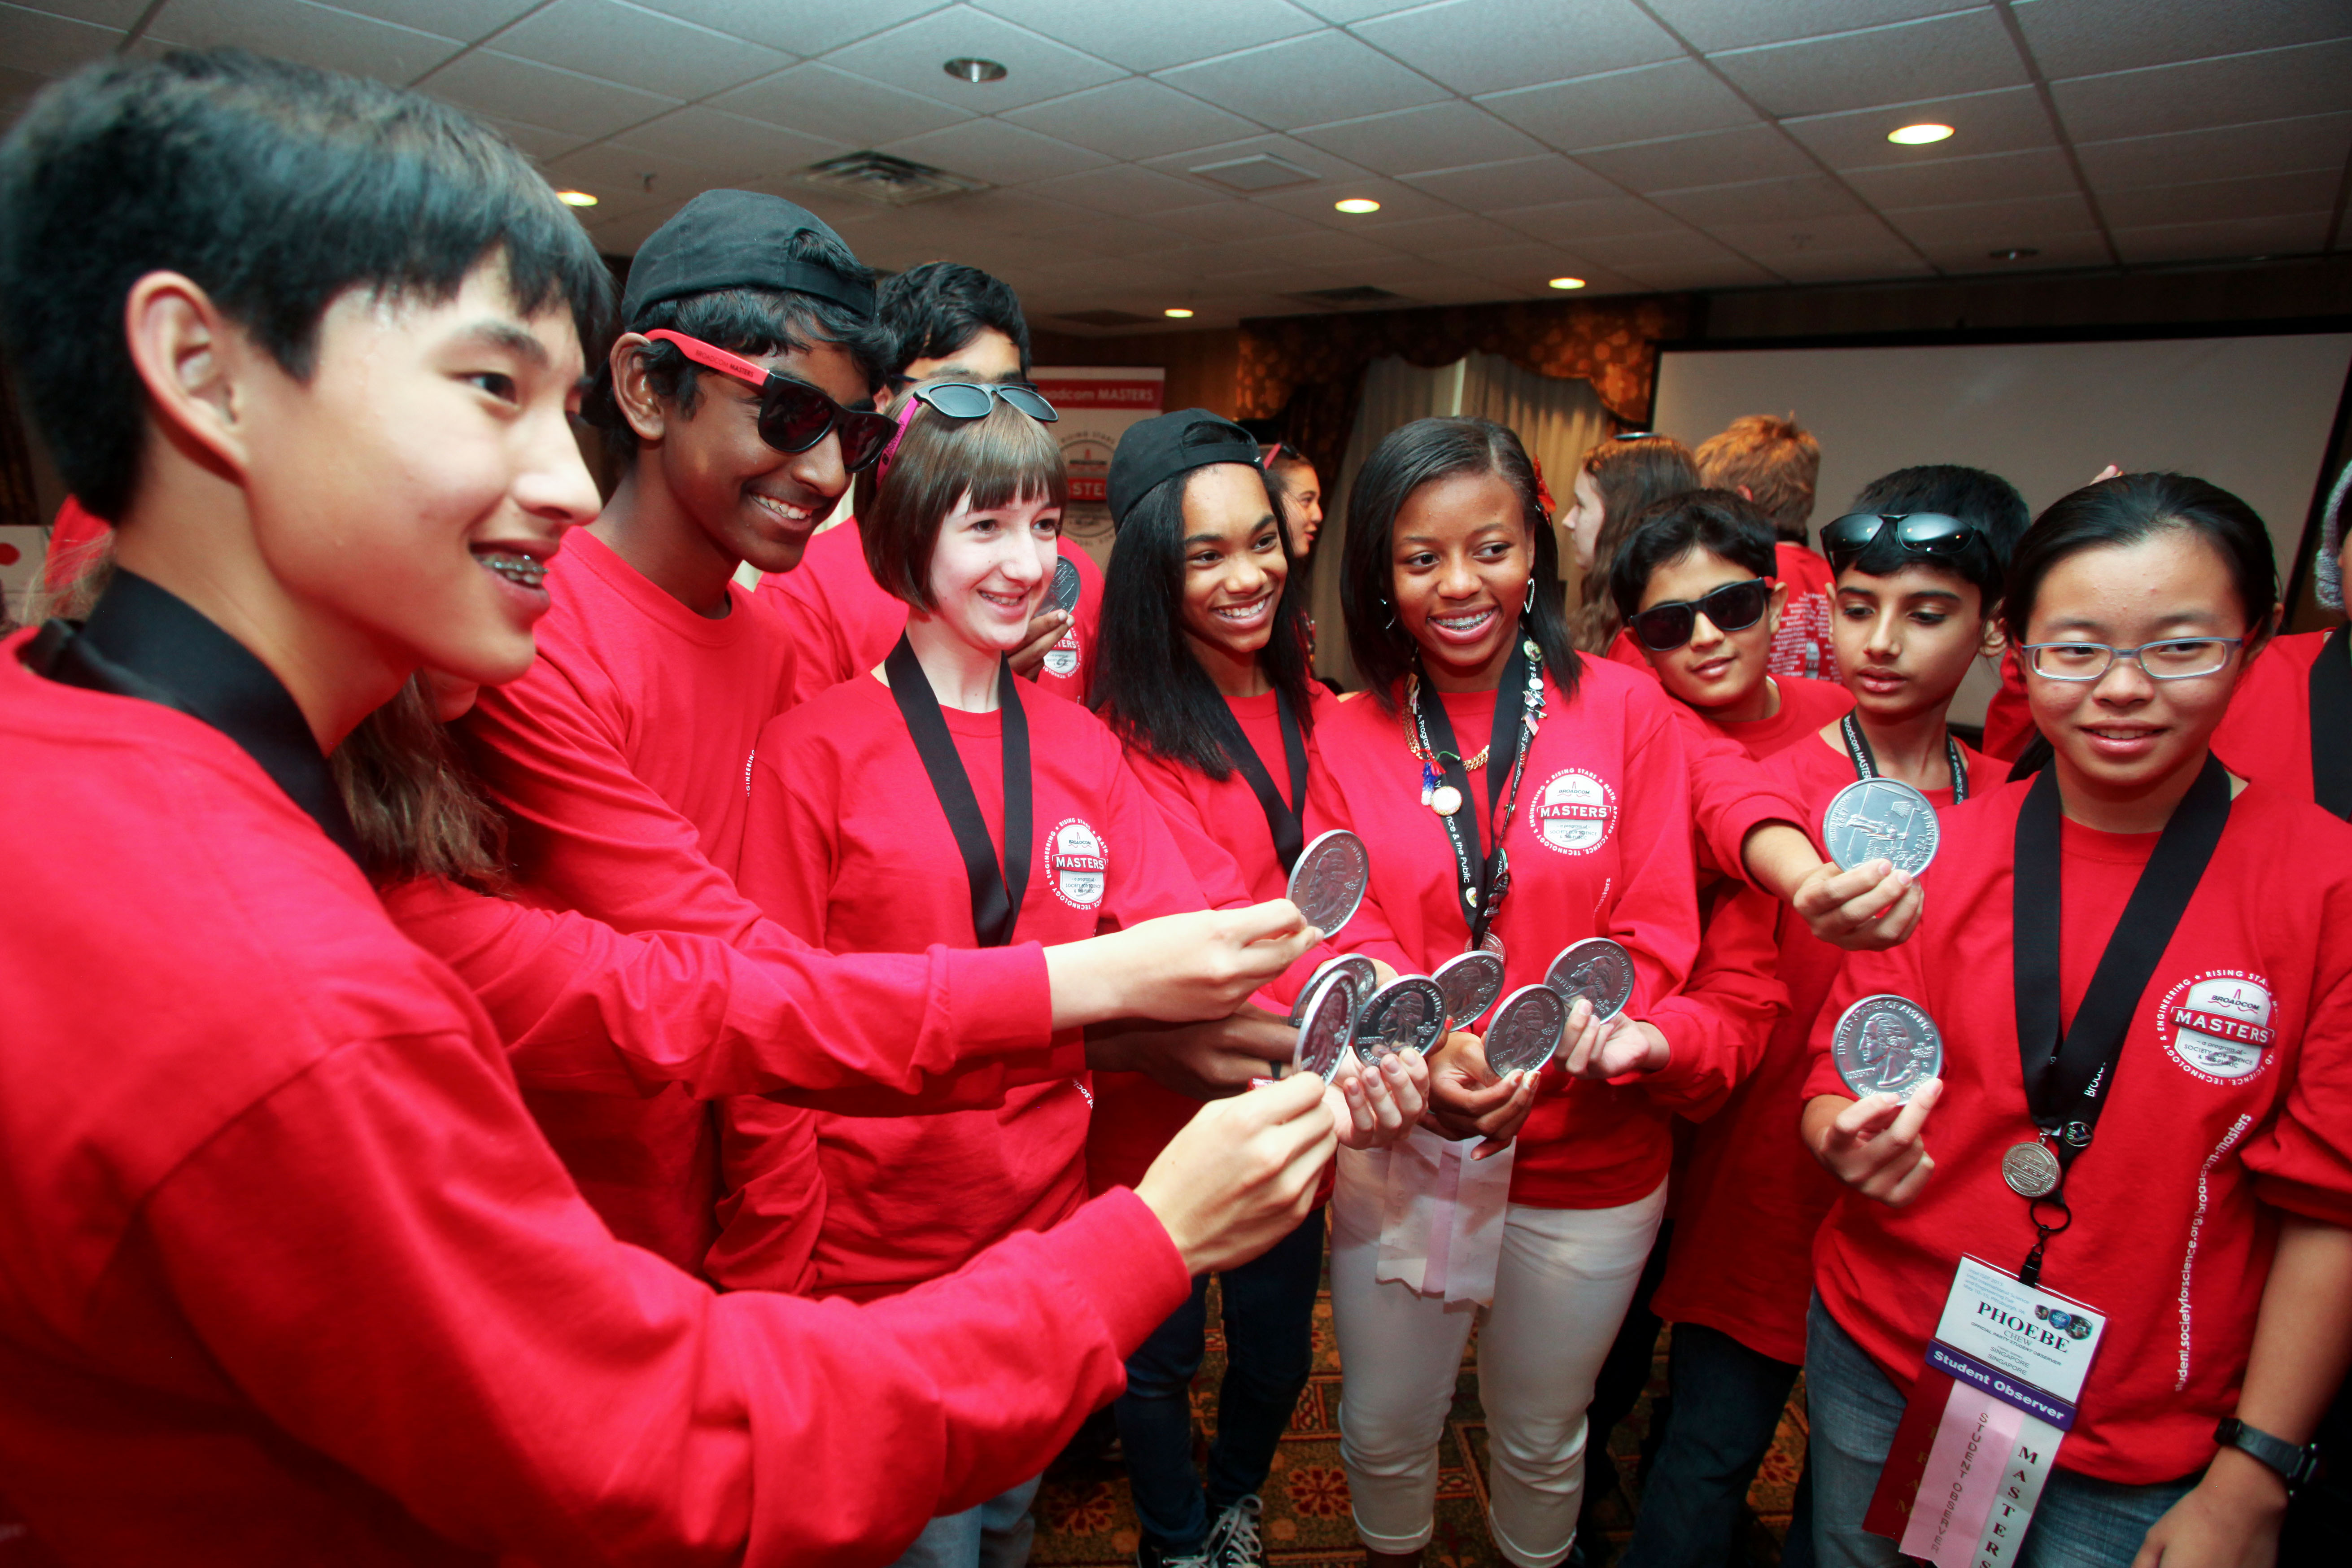 Delegates show off their medals at the 2015 Broadcom MASTERS International.